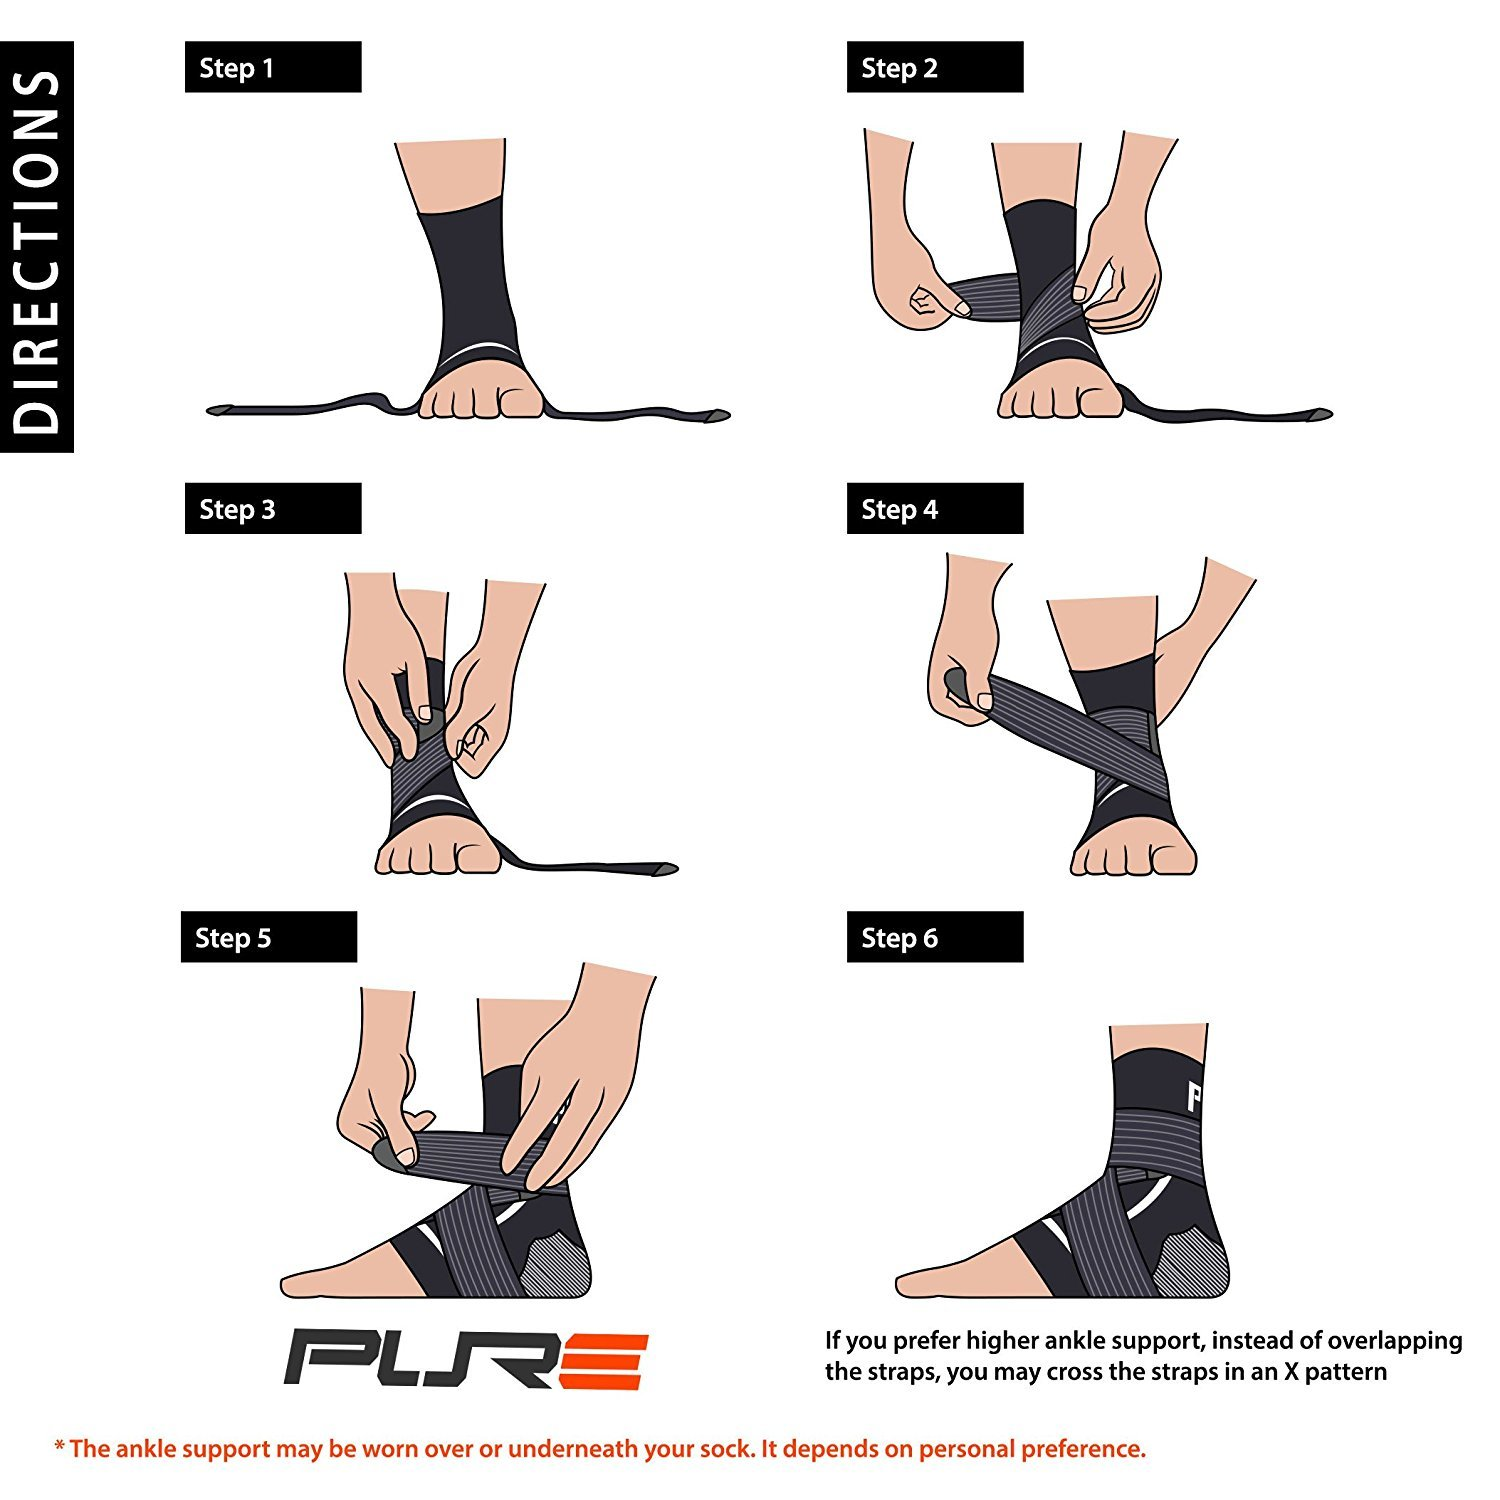 Ankle Support Brace - Compression Sleeve with Adjustable Strap, Great for Running, Ankle Sprains (L/XL, Black - 1 Pair (Two Sleeves)) by Pure Compression (Image #3)